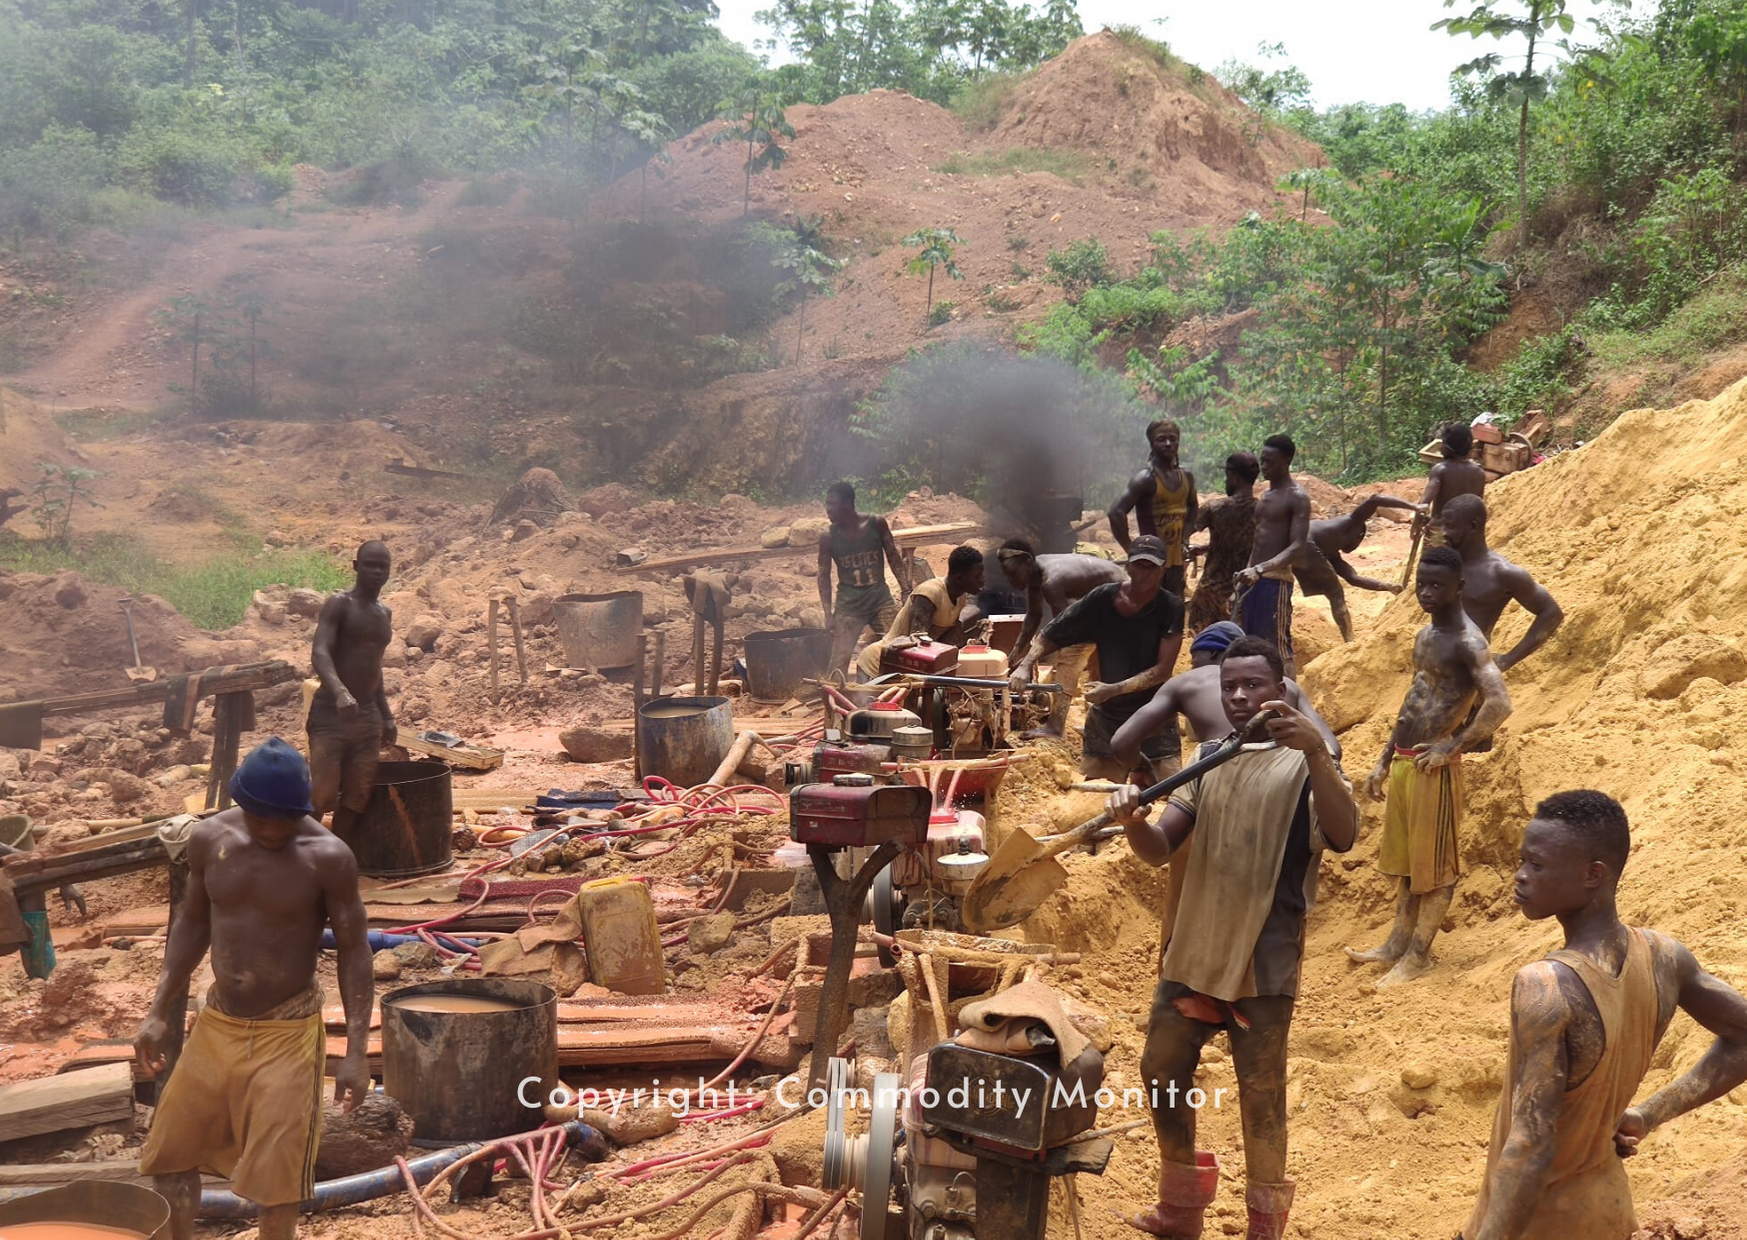 Changing the status quo in Ghana's mining sector